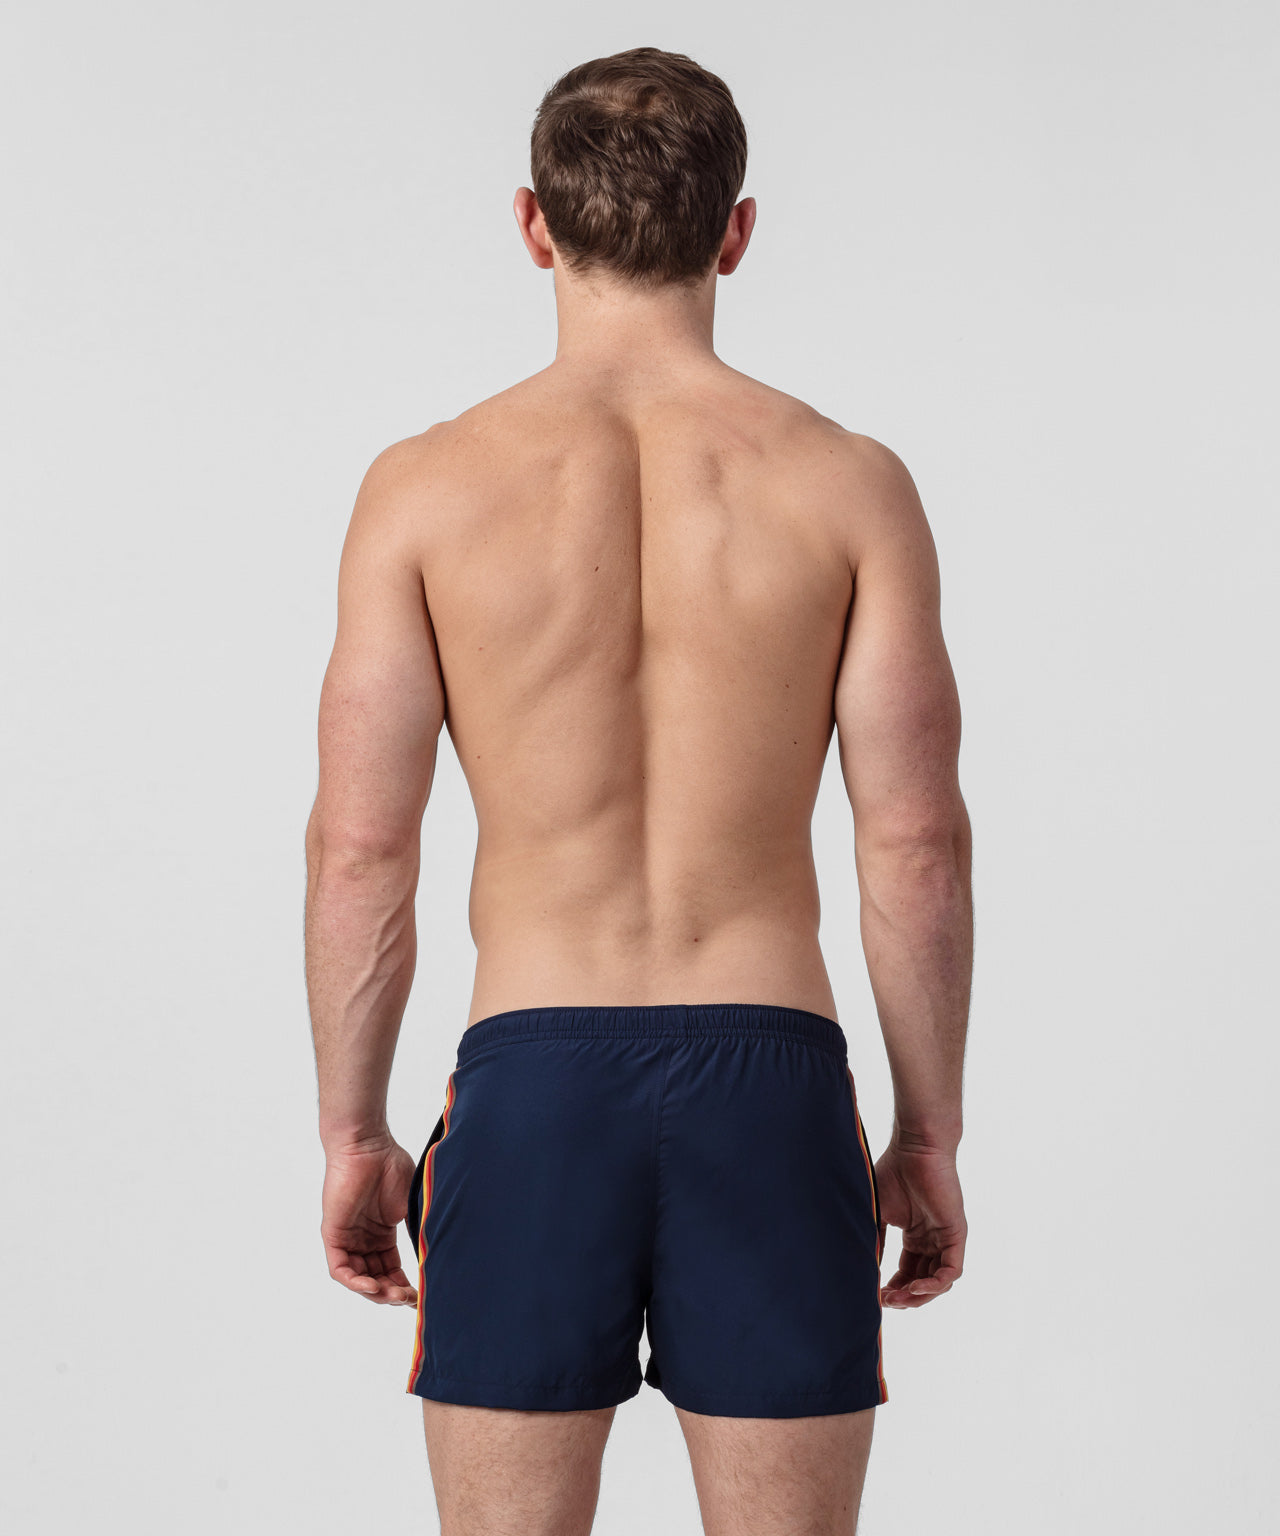 Swim Shorts Side Stripes - navy/red